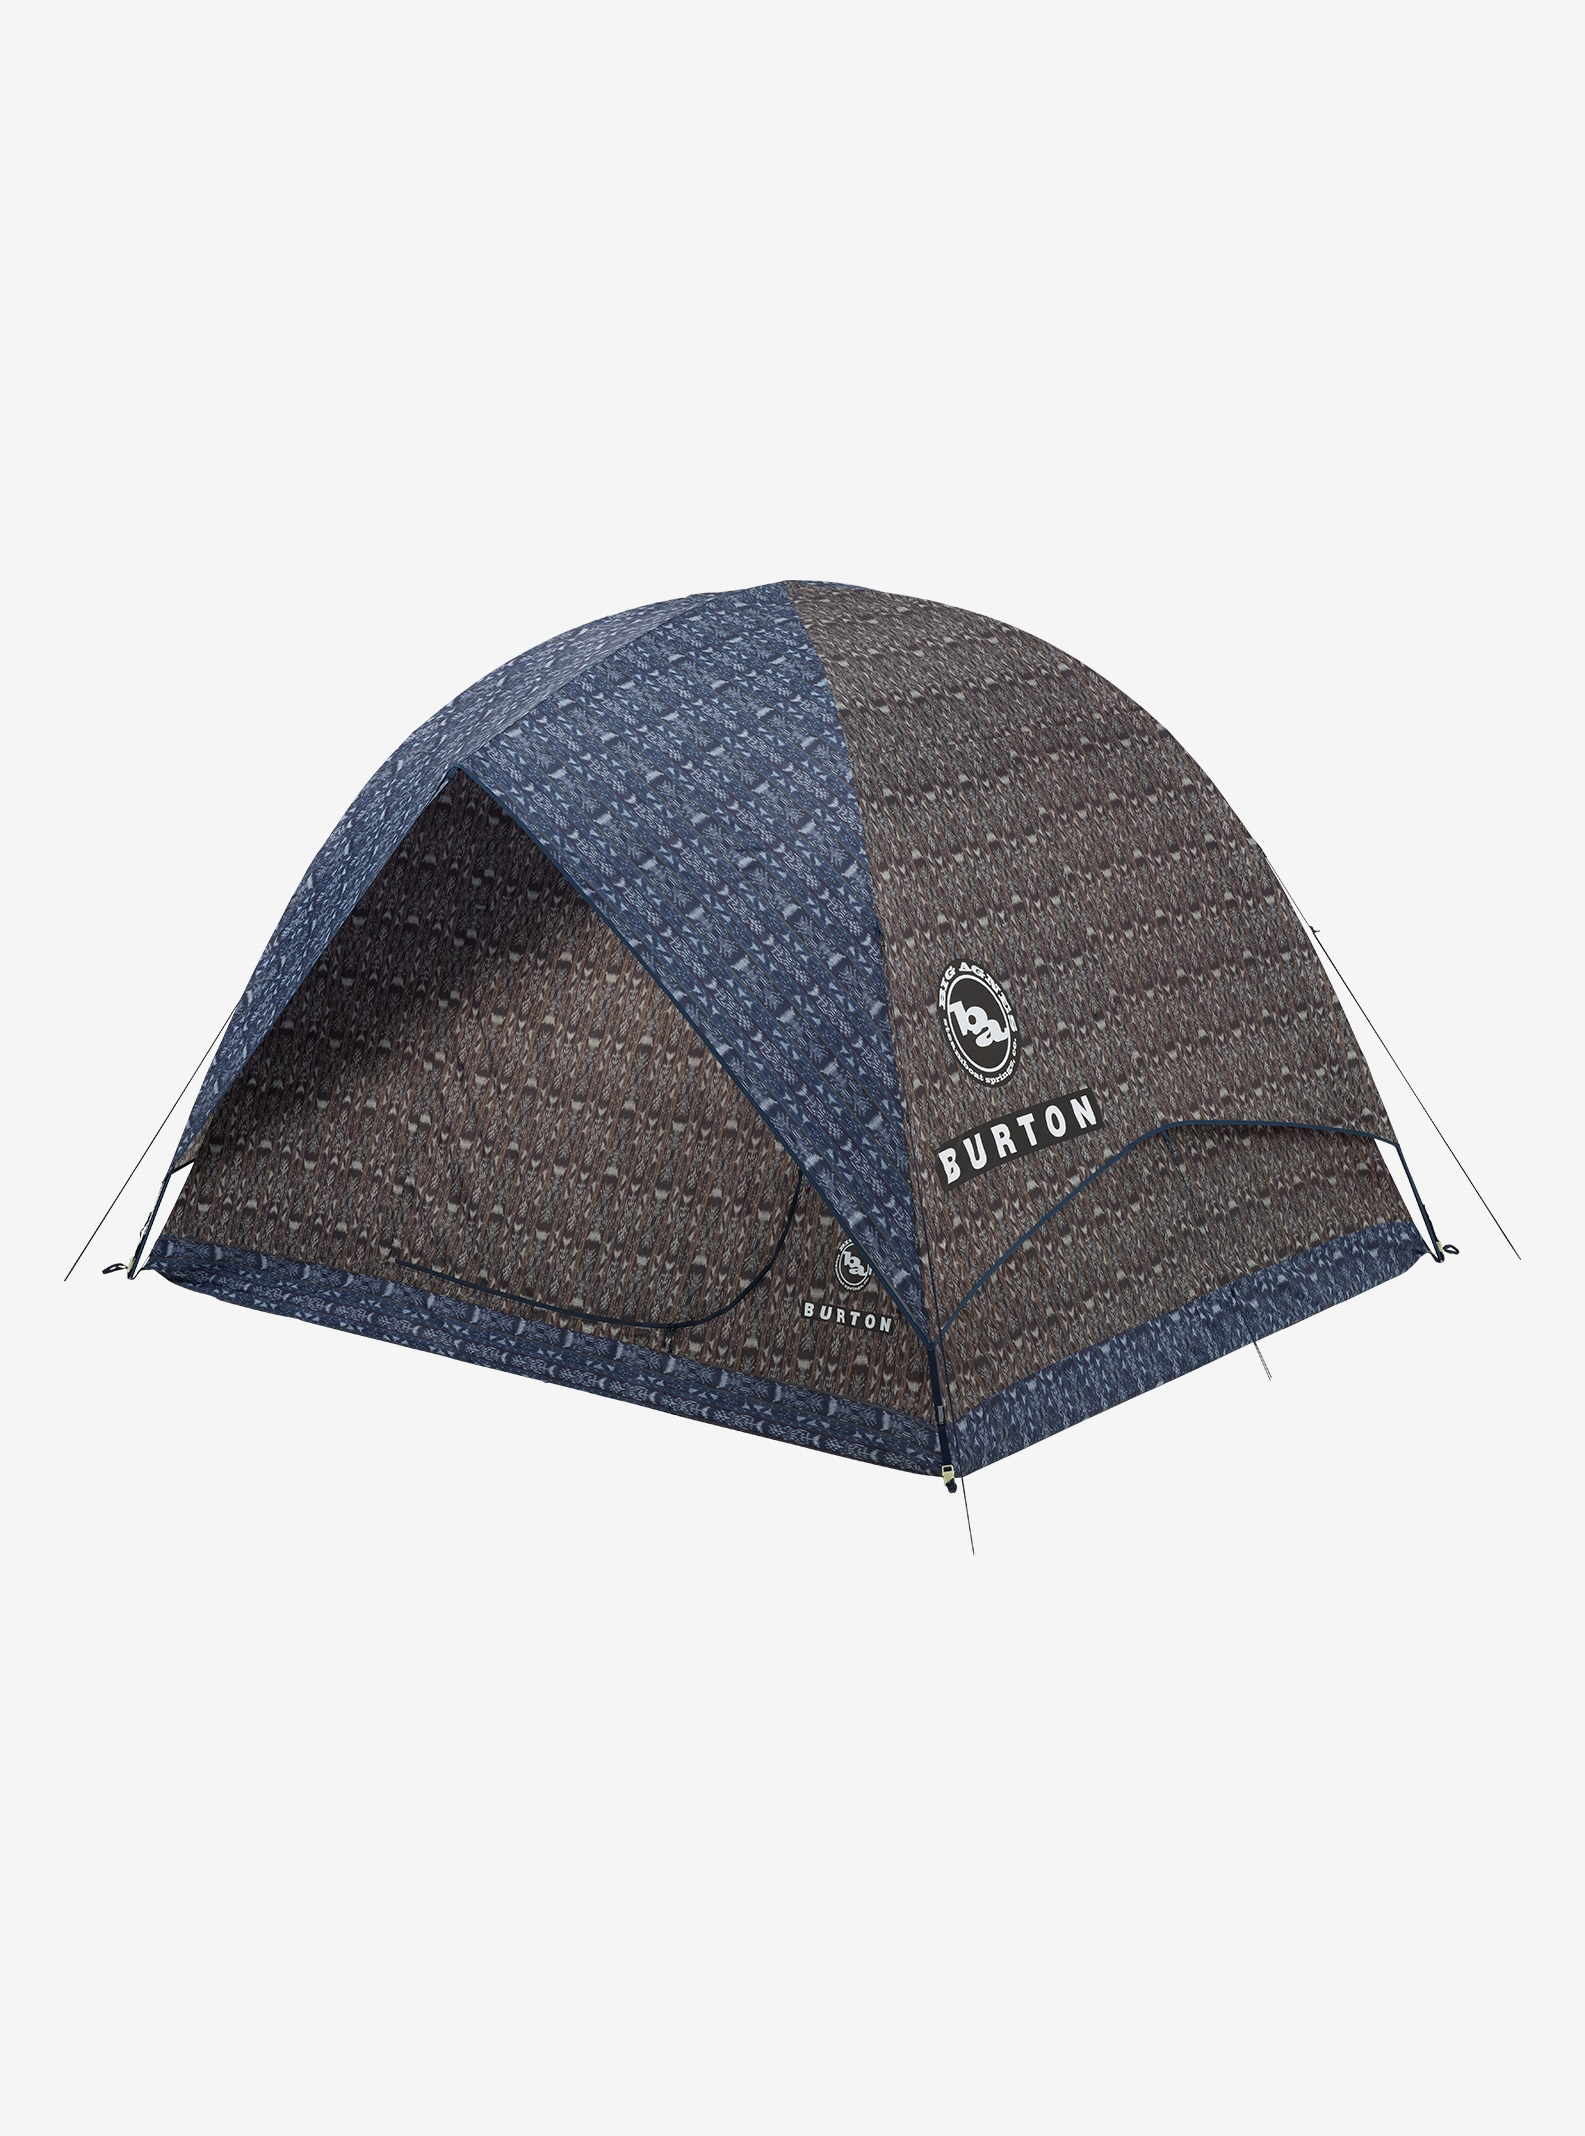 Big Agnes x Burton Rabbit Ears 6 Tent shown in Guatikat Print